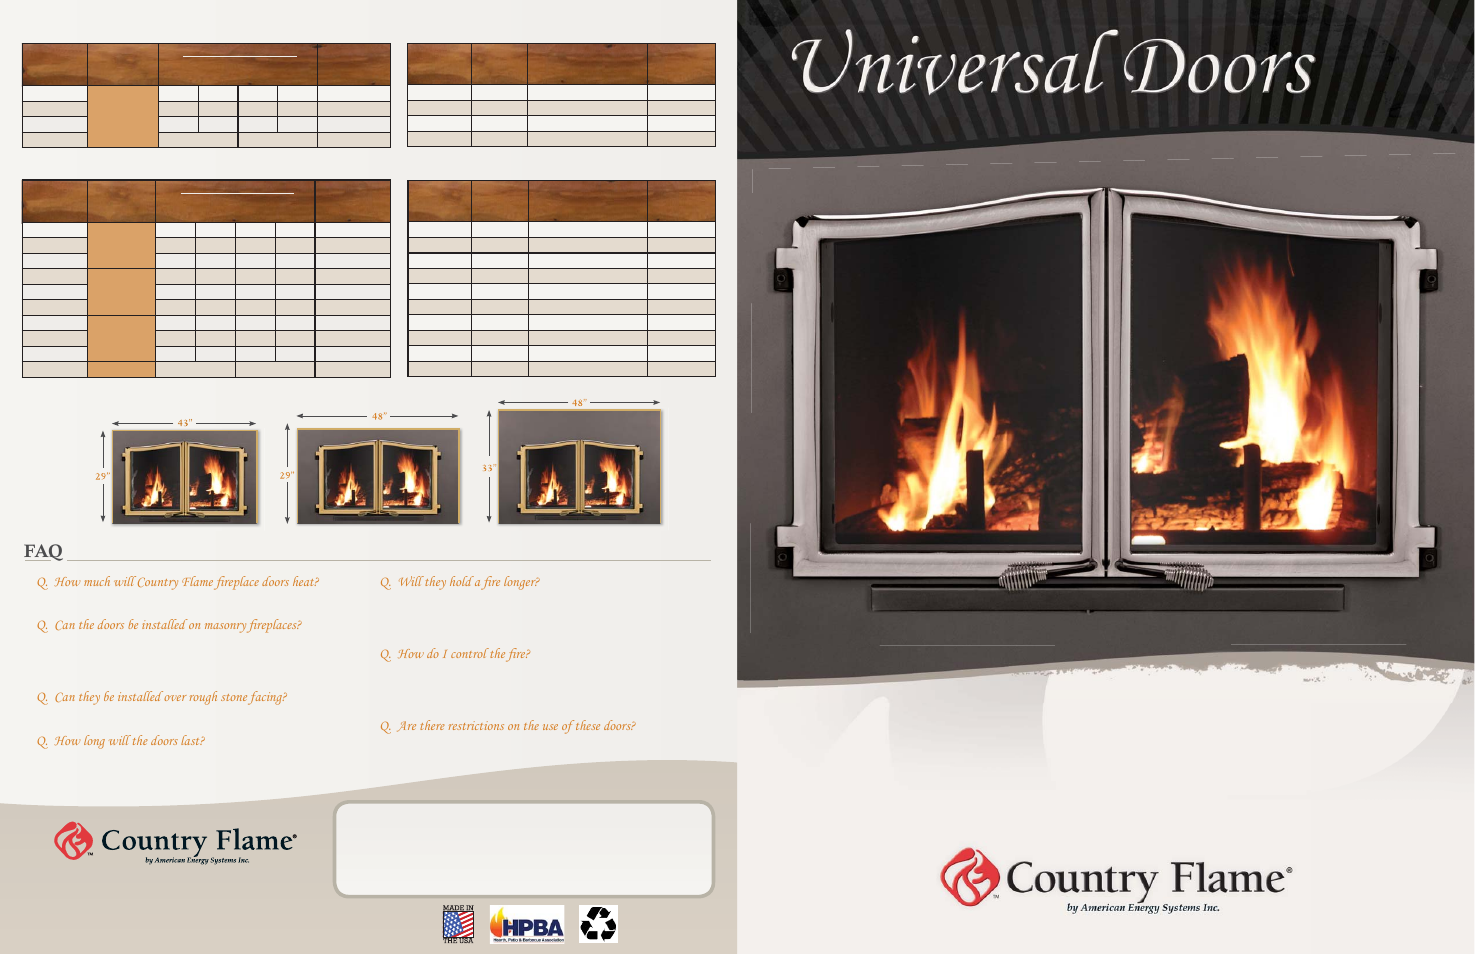 Country Flame Universal Doors 400 Series User Manual 4 Pages